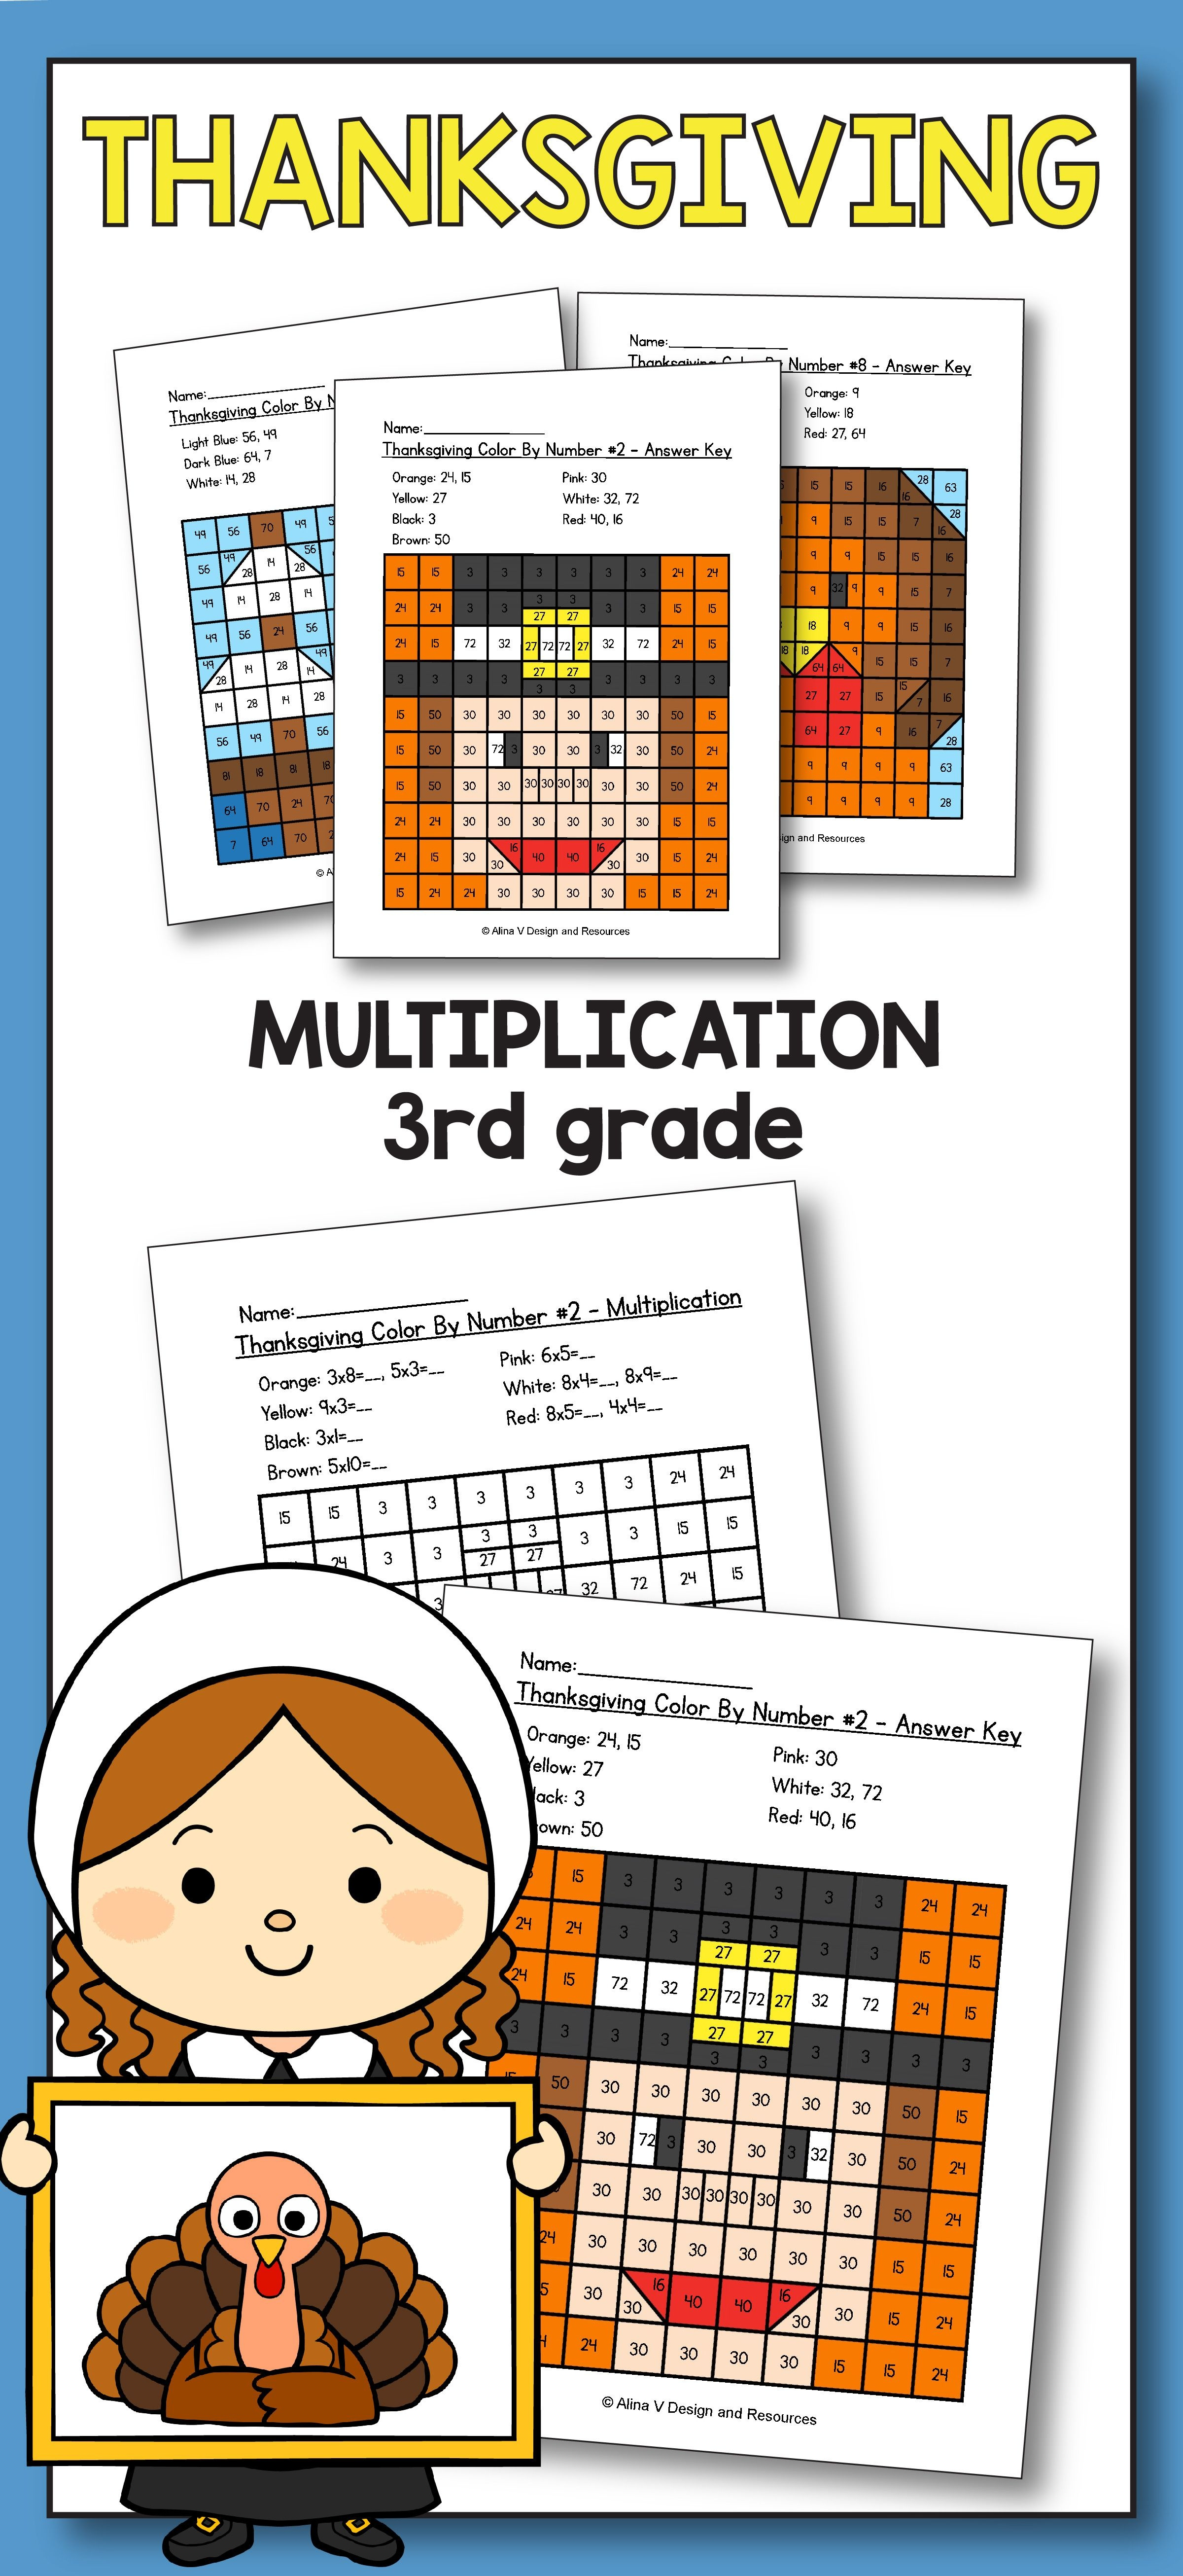 Thanksgiving Colornumber 3Rd Grade - Thanksgiving Math - Free Printable Thanksgiving Math Worksheets For 3Rd Grade